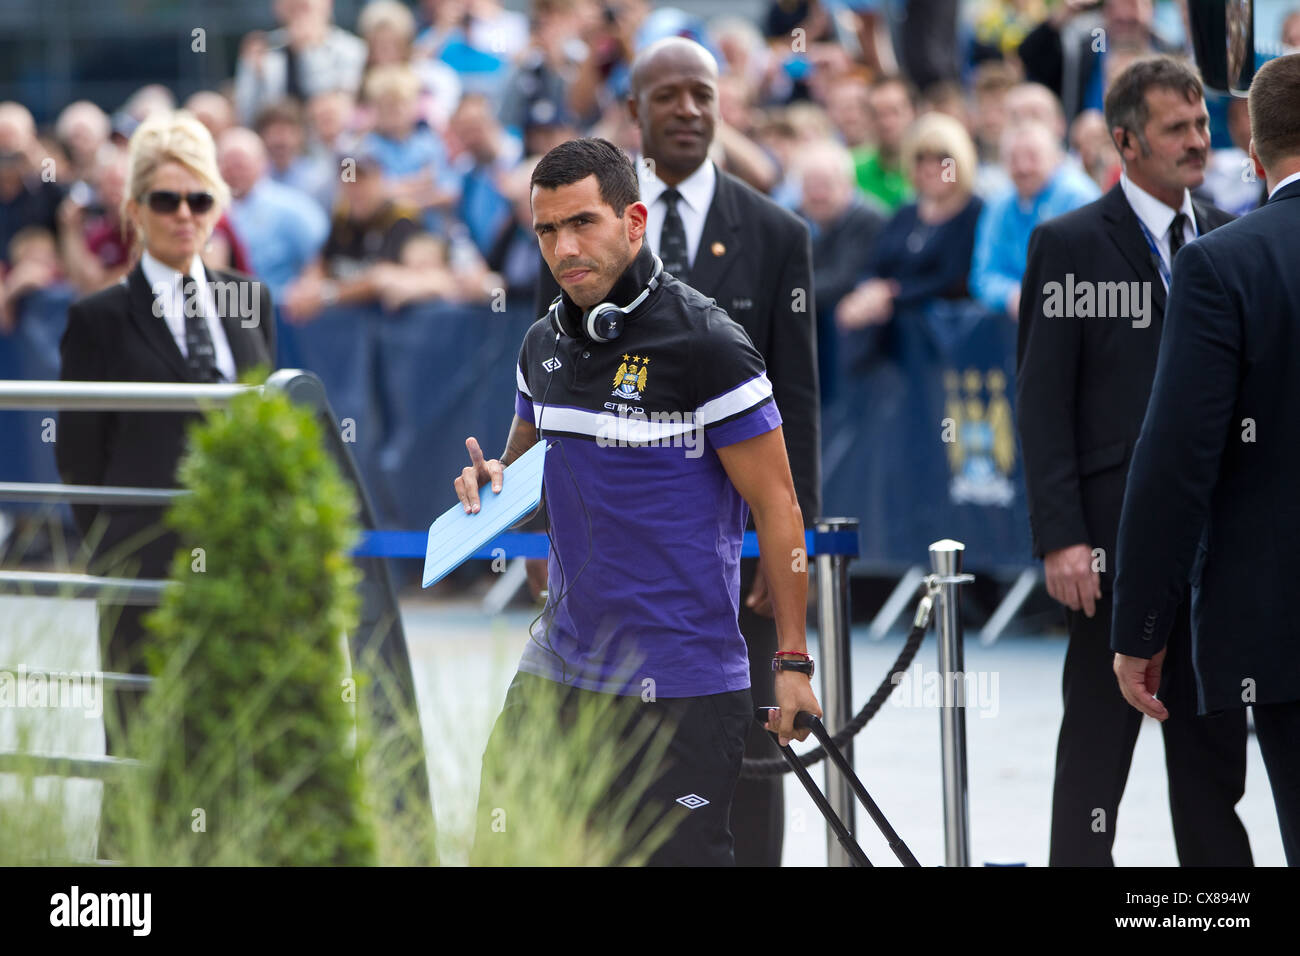 Carlos Tevez footballer arriving at the Etihad Stadium, Manchester City Football Club, Manchester, England, United - Stock Image